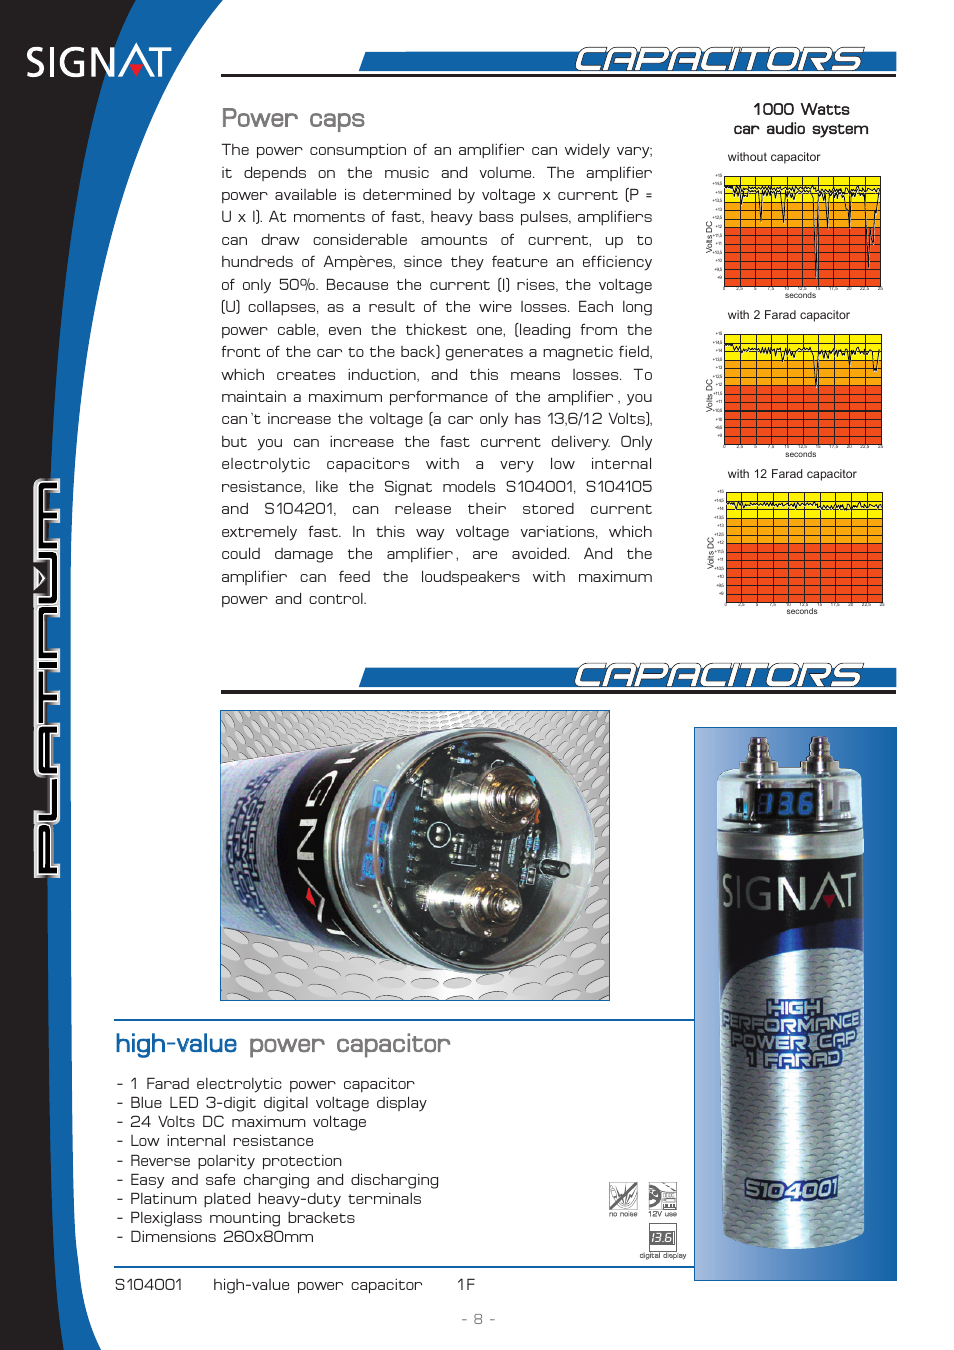 High-v value power capacitor, Power caps, 1000 watts car audio system |  Signat Platinum S104201 User Manual | Page 8 / 12